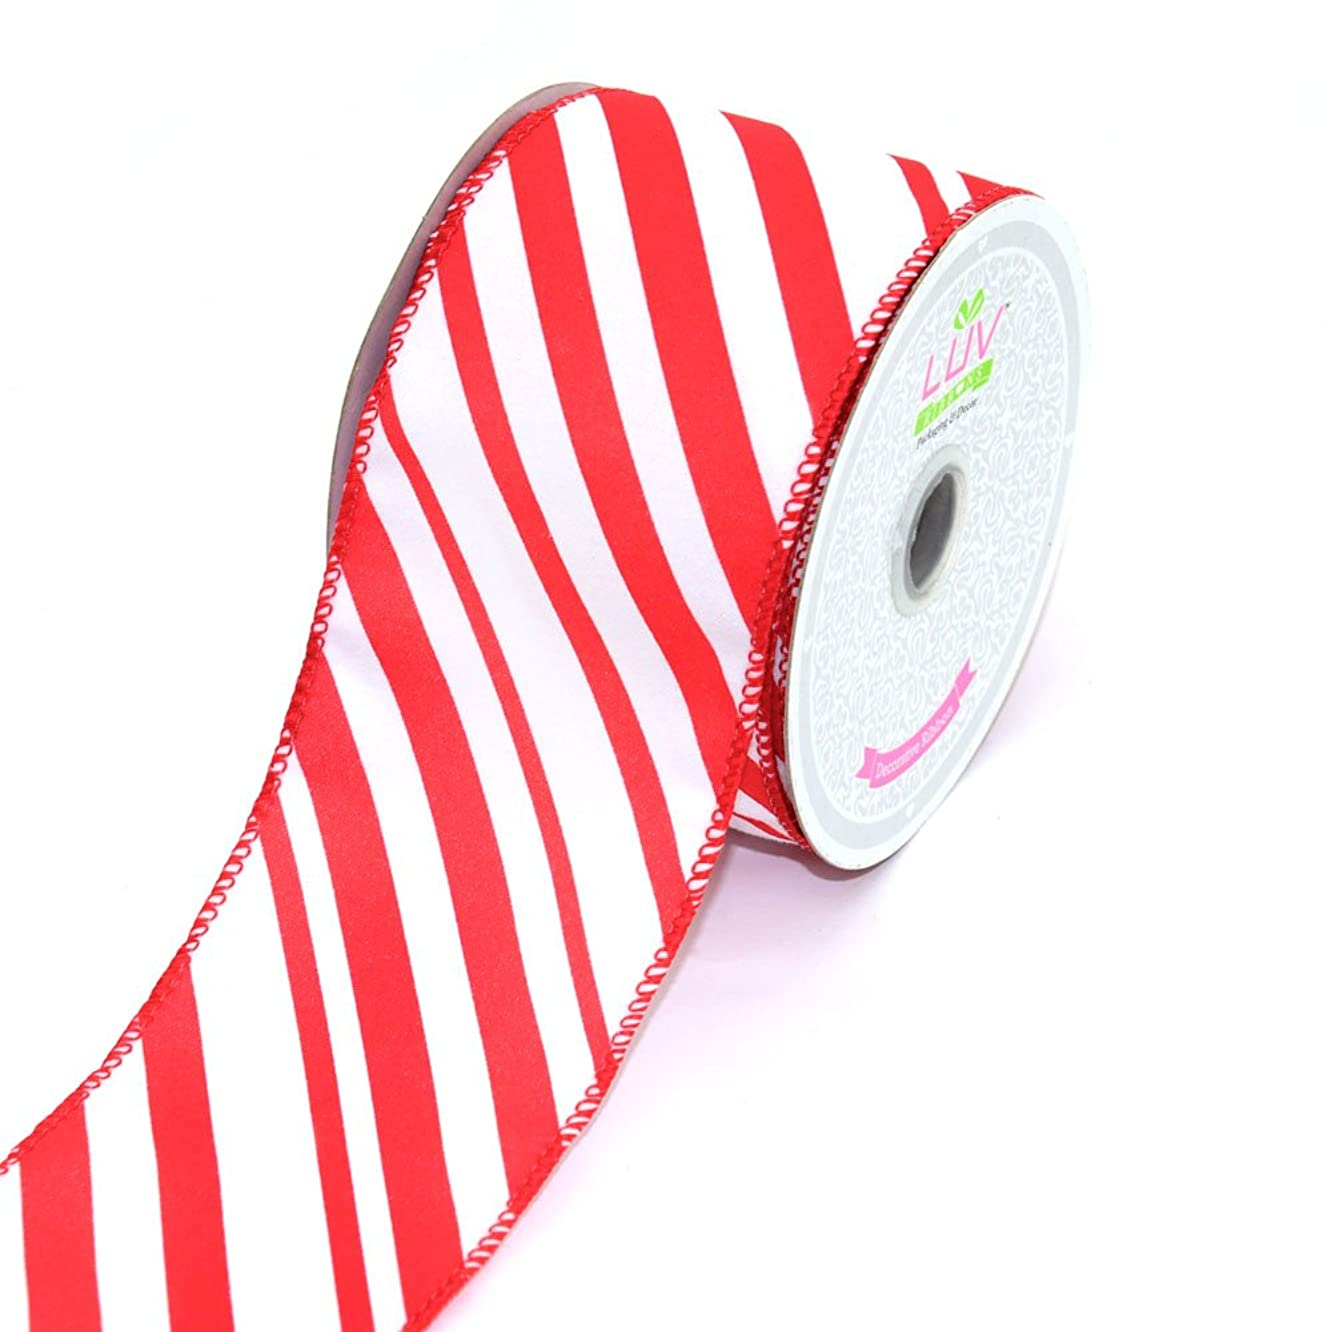 LUV RIBBONS by Creative Ideas 2-1/2-Inch Velvet Candy Stripes Ribbon, 10-Yard, White/Red